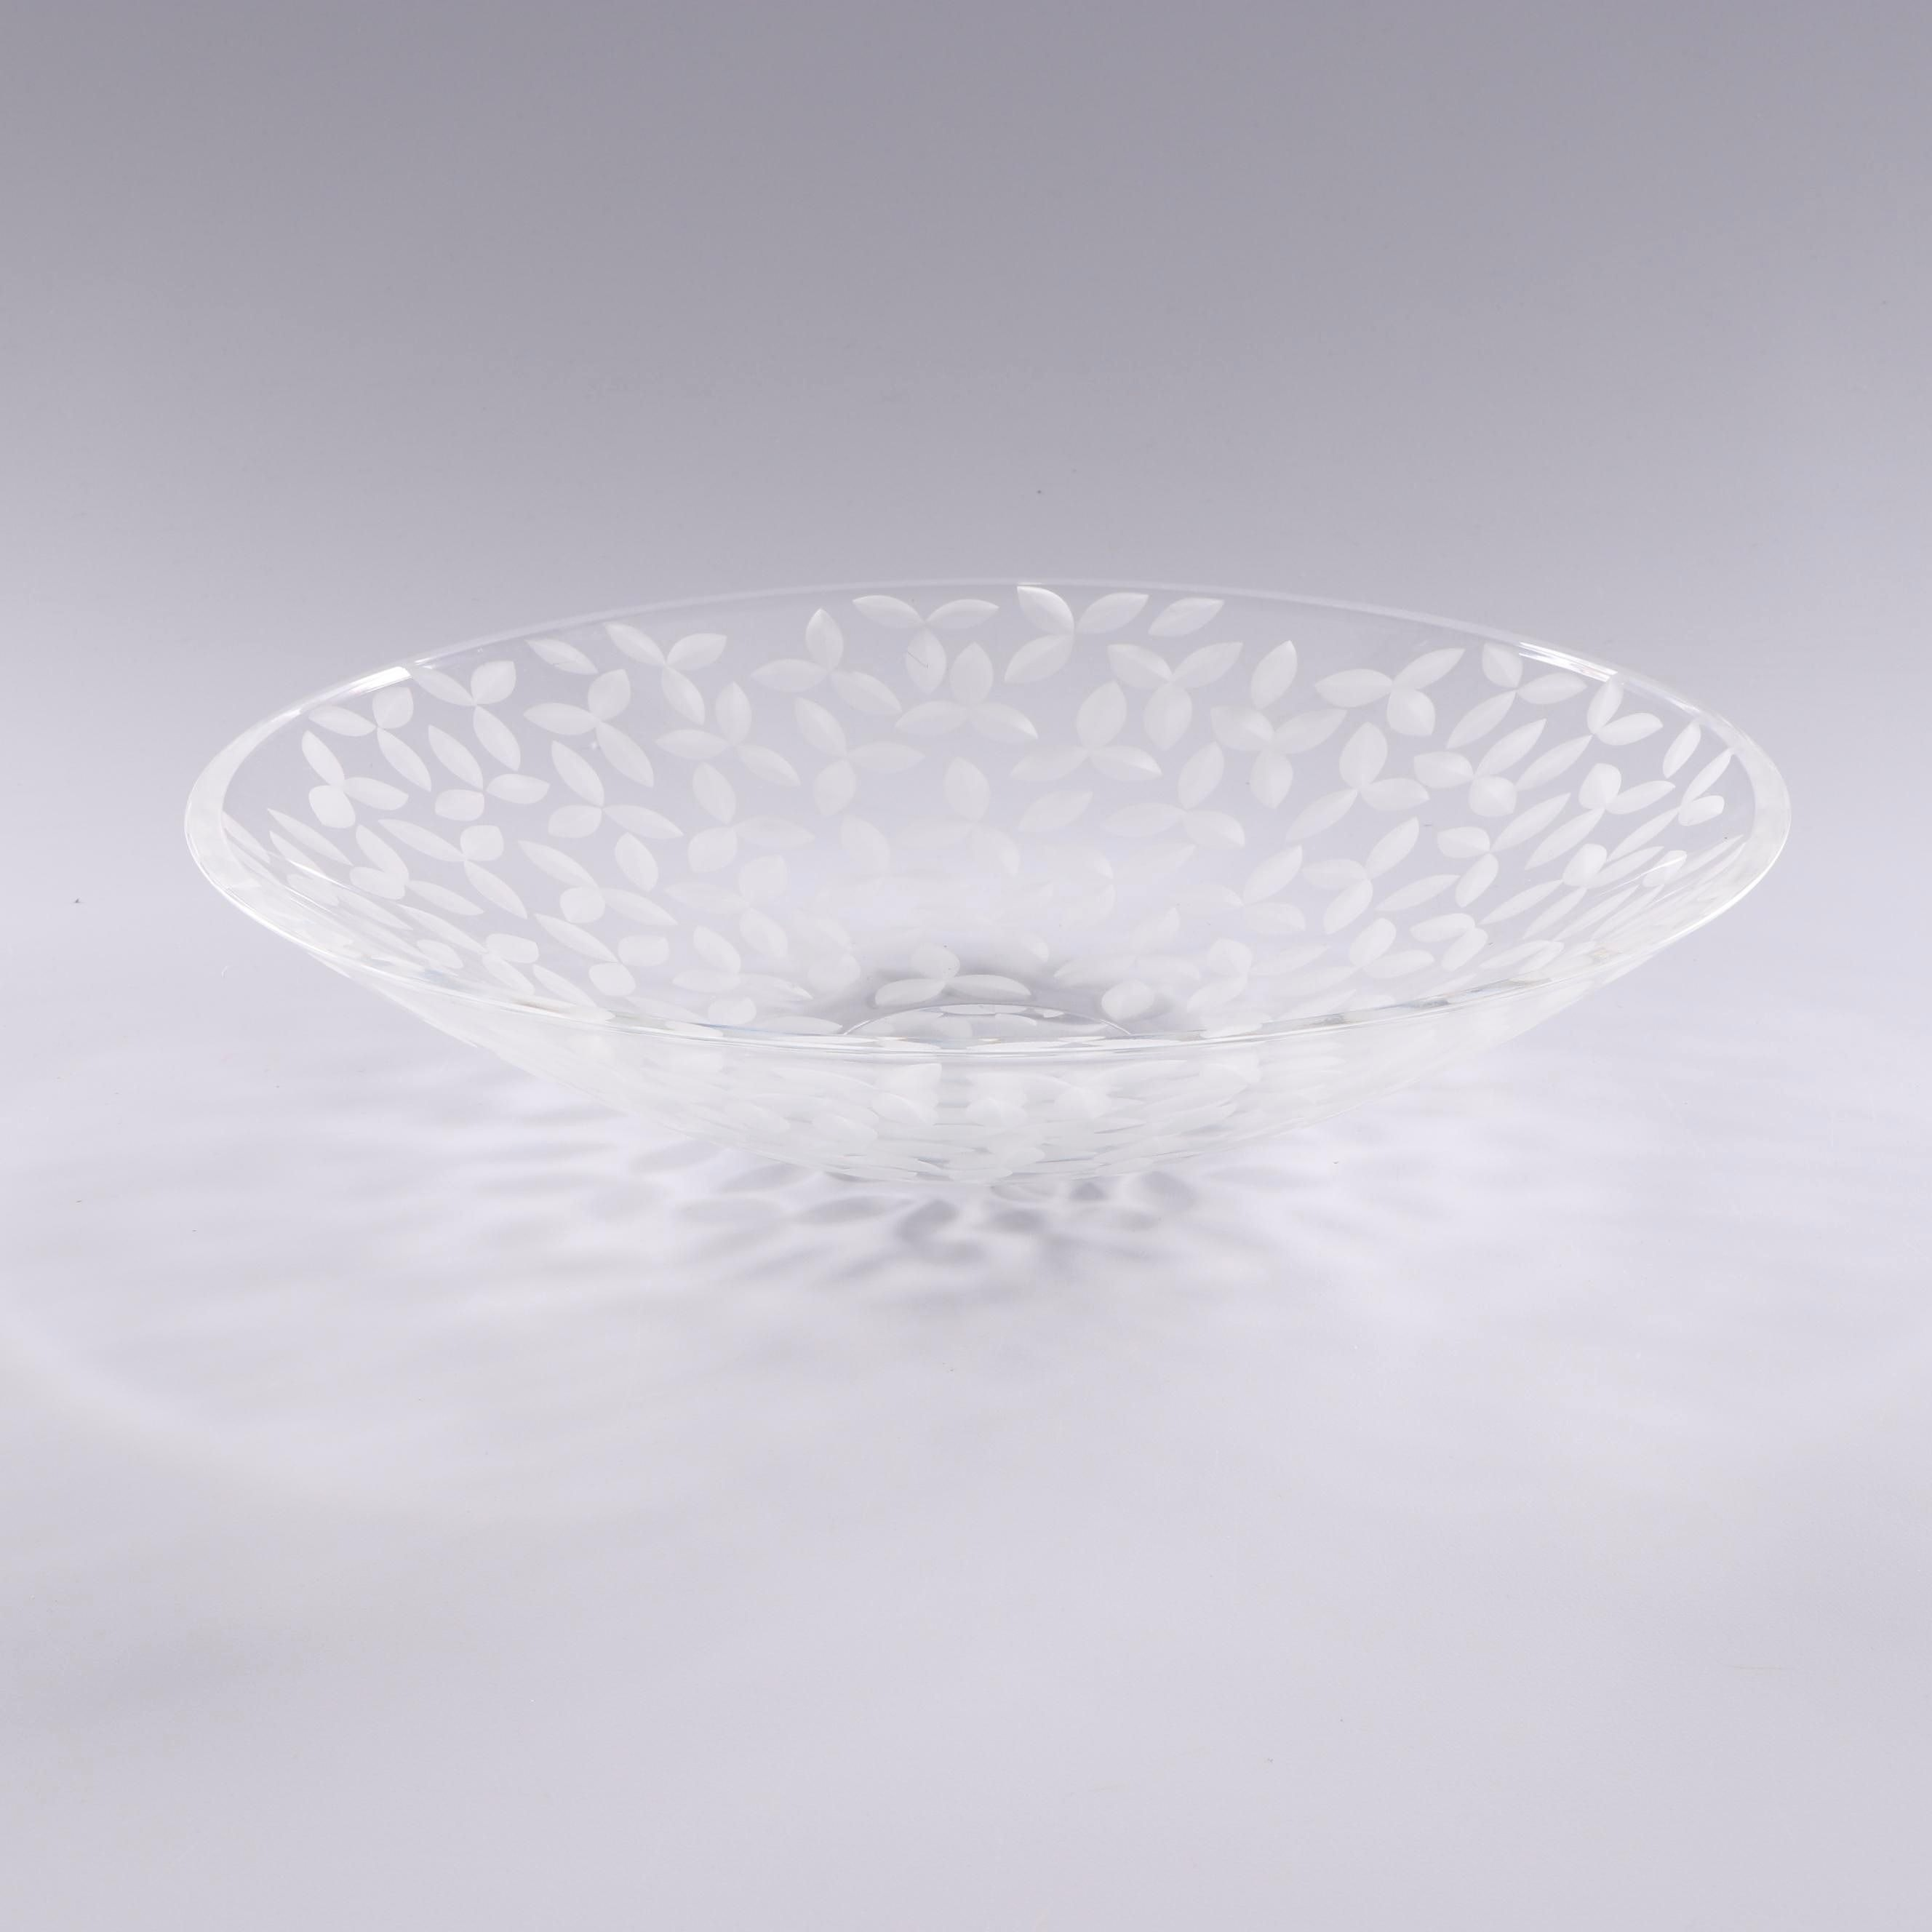 Tiffany & Co. Etched Glass Serving Bowl